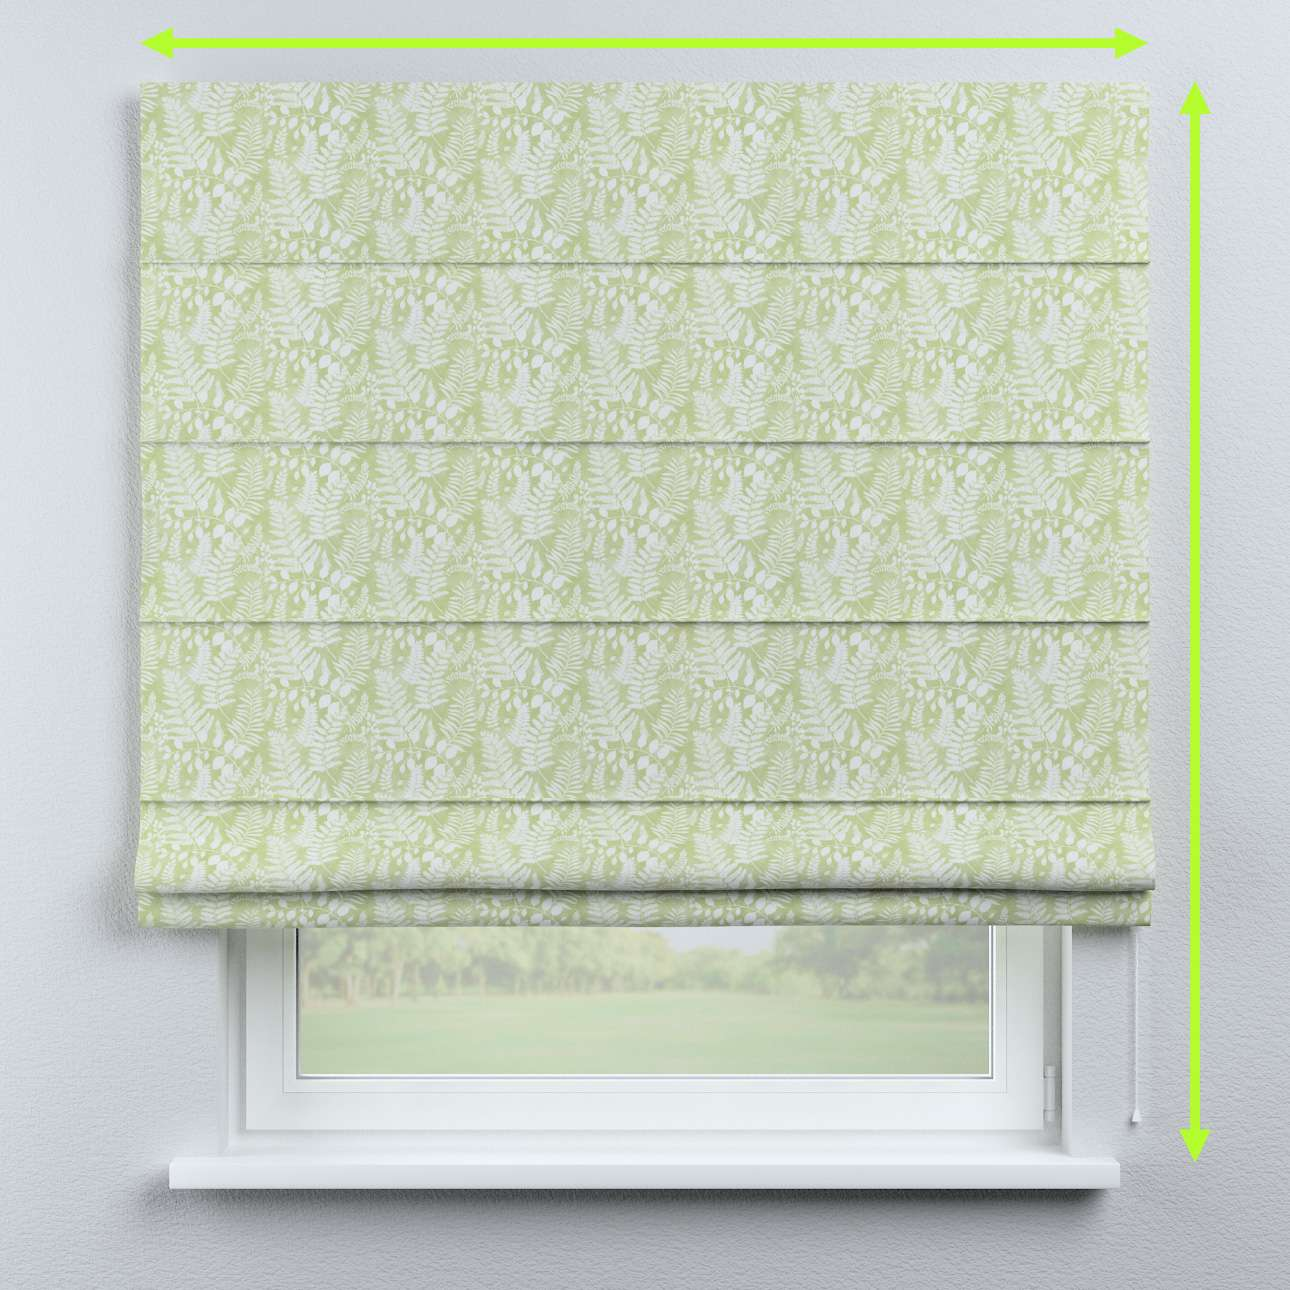 Capri roman blind in collection Pastel Forest, fabric: 142-49